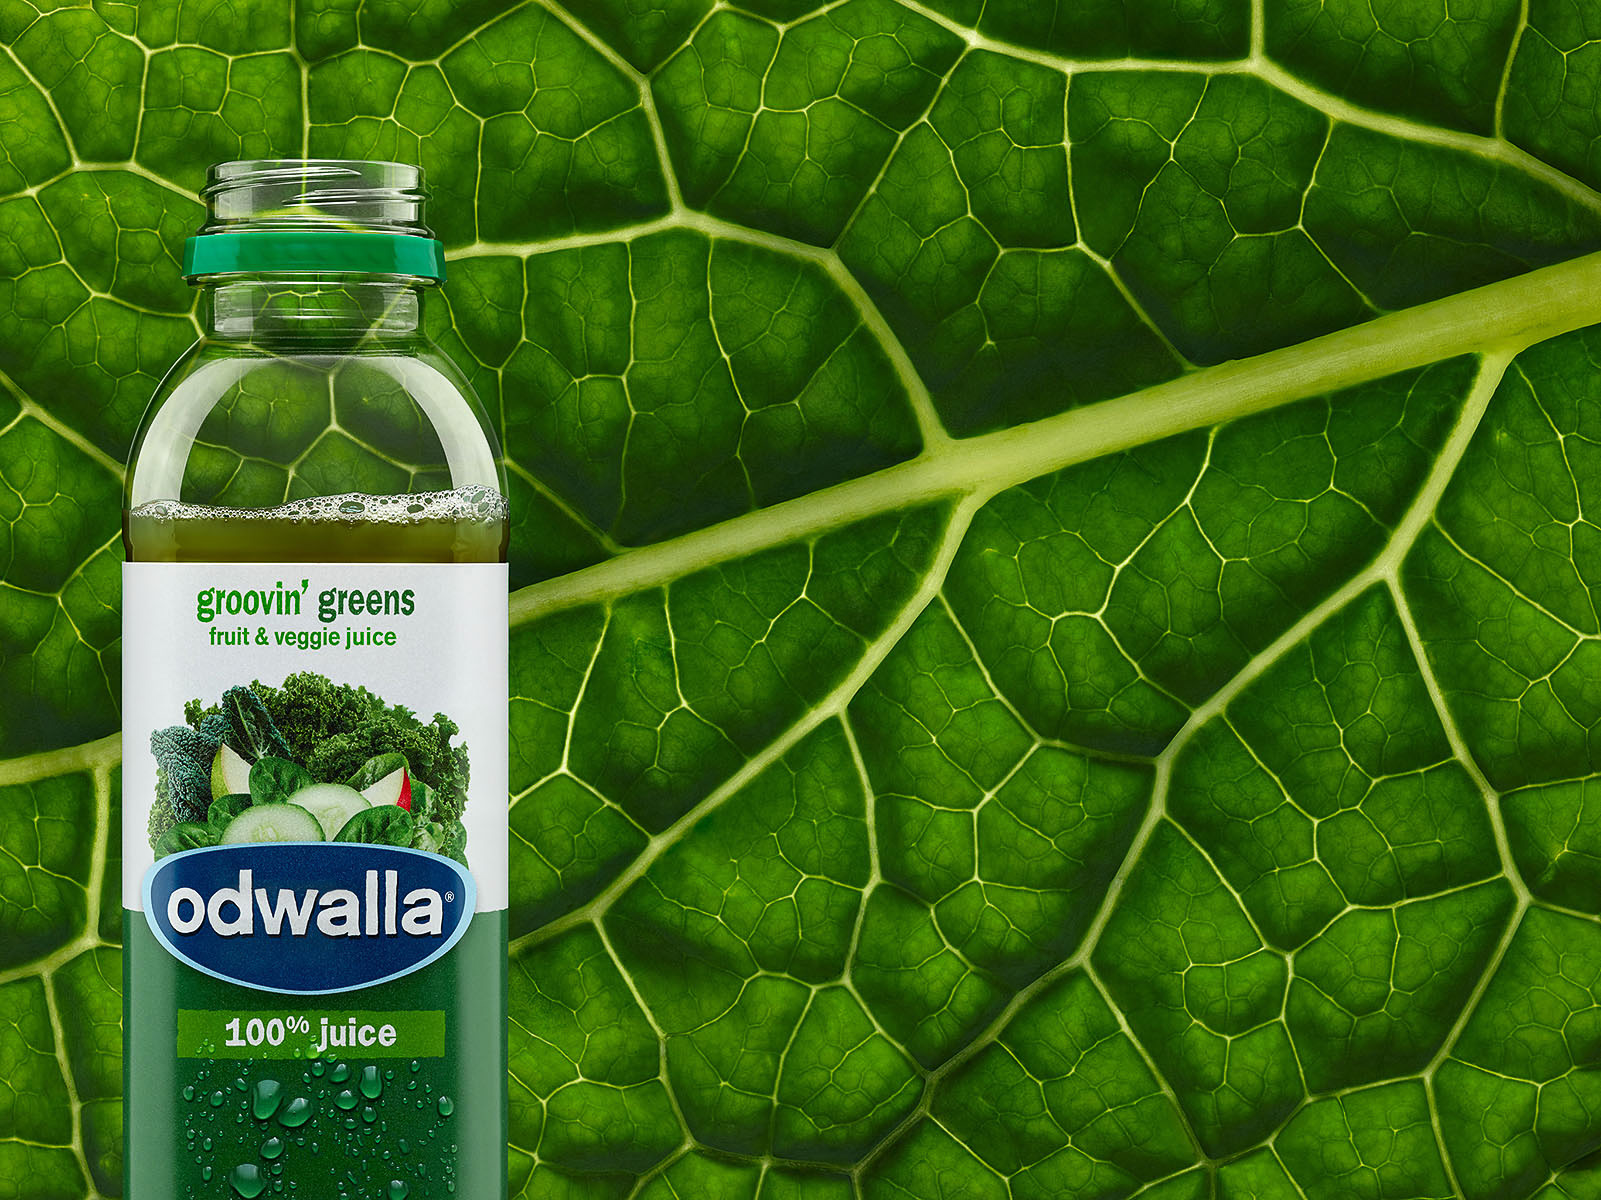 014_Odwalla_15oz_GroovinGreens_03_Droplets_Final-small-38